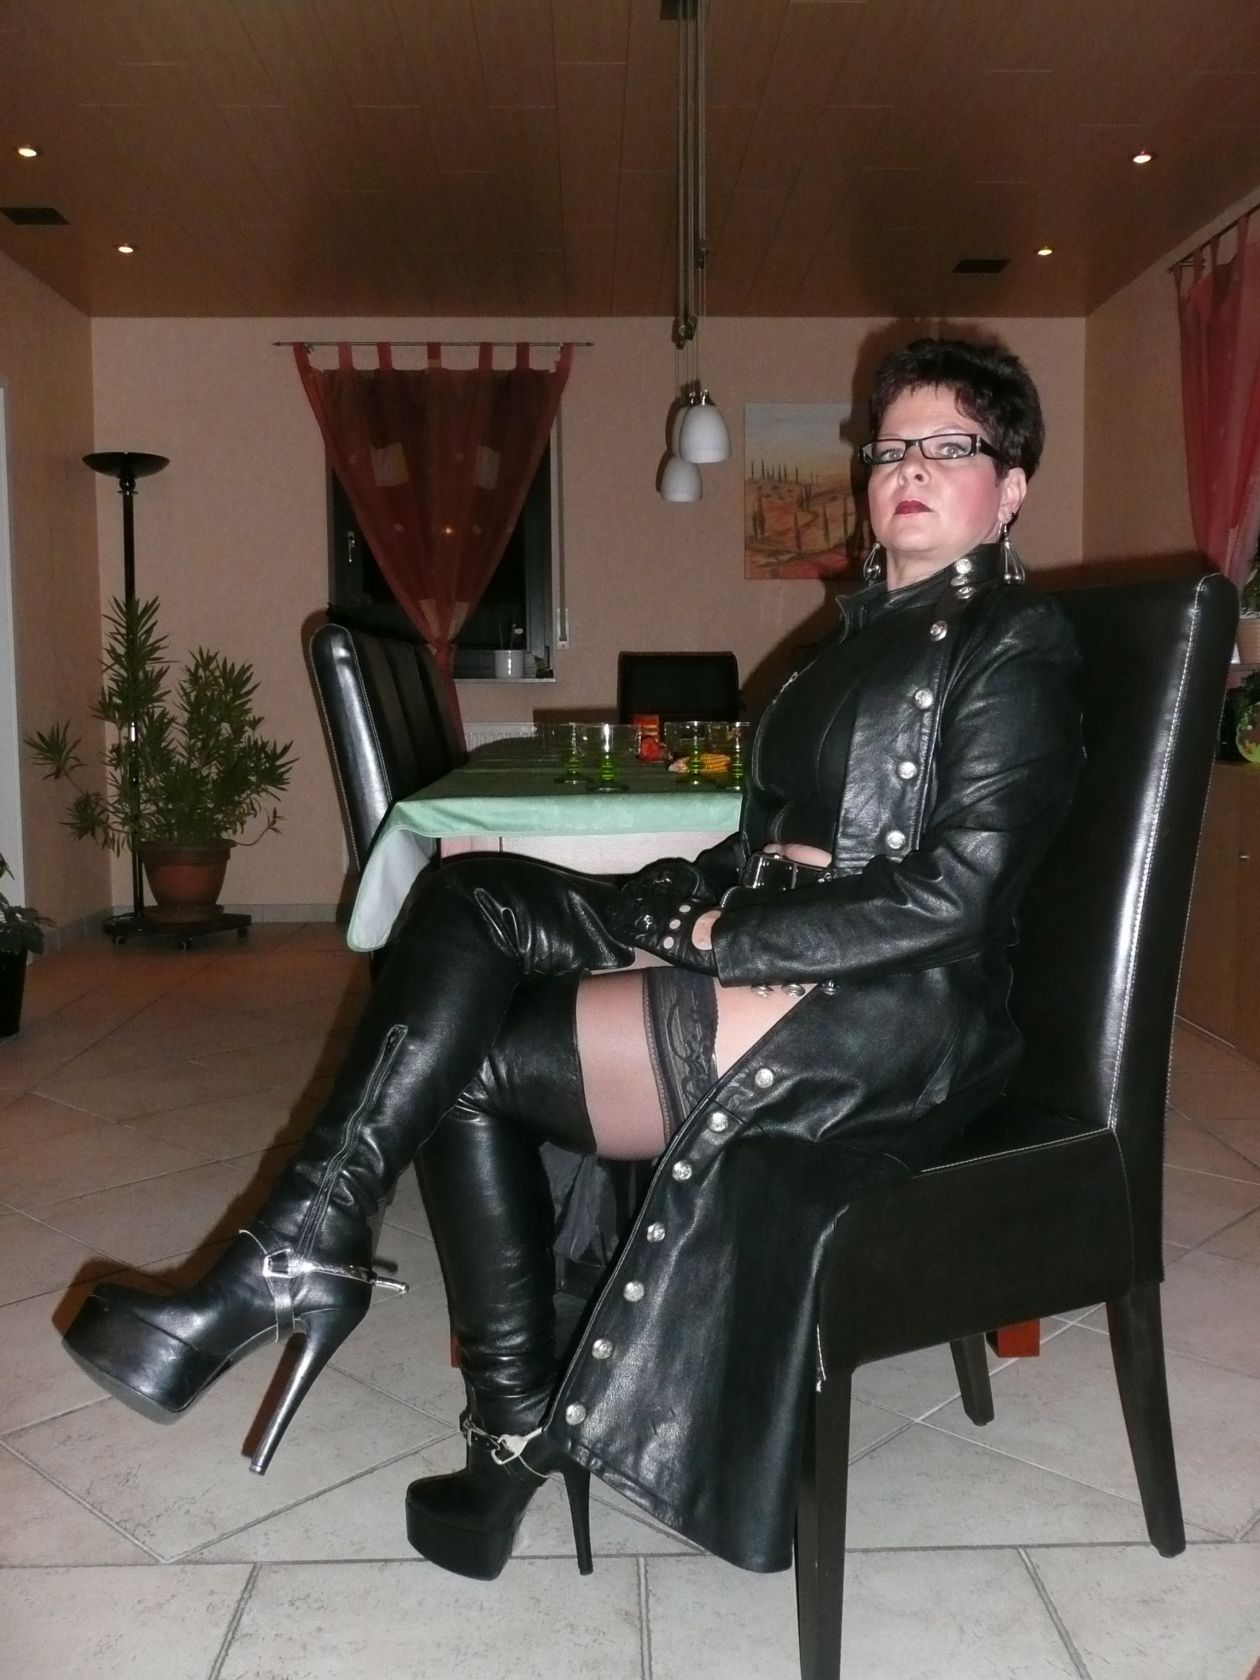 Fetish women with glasses